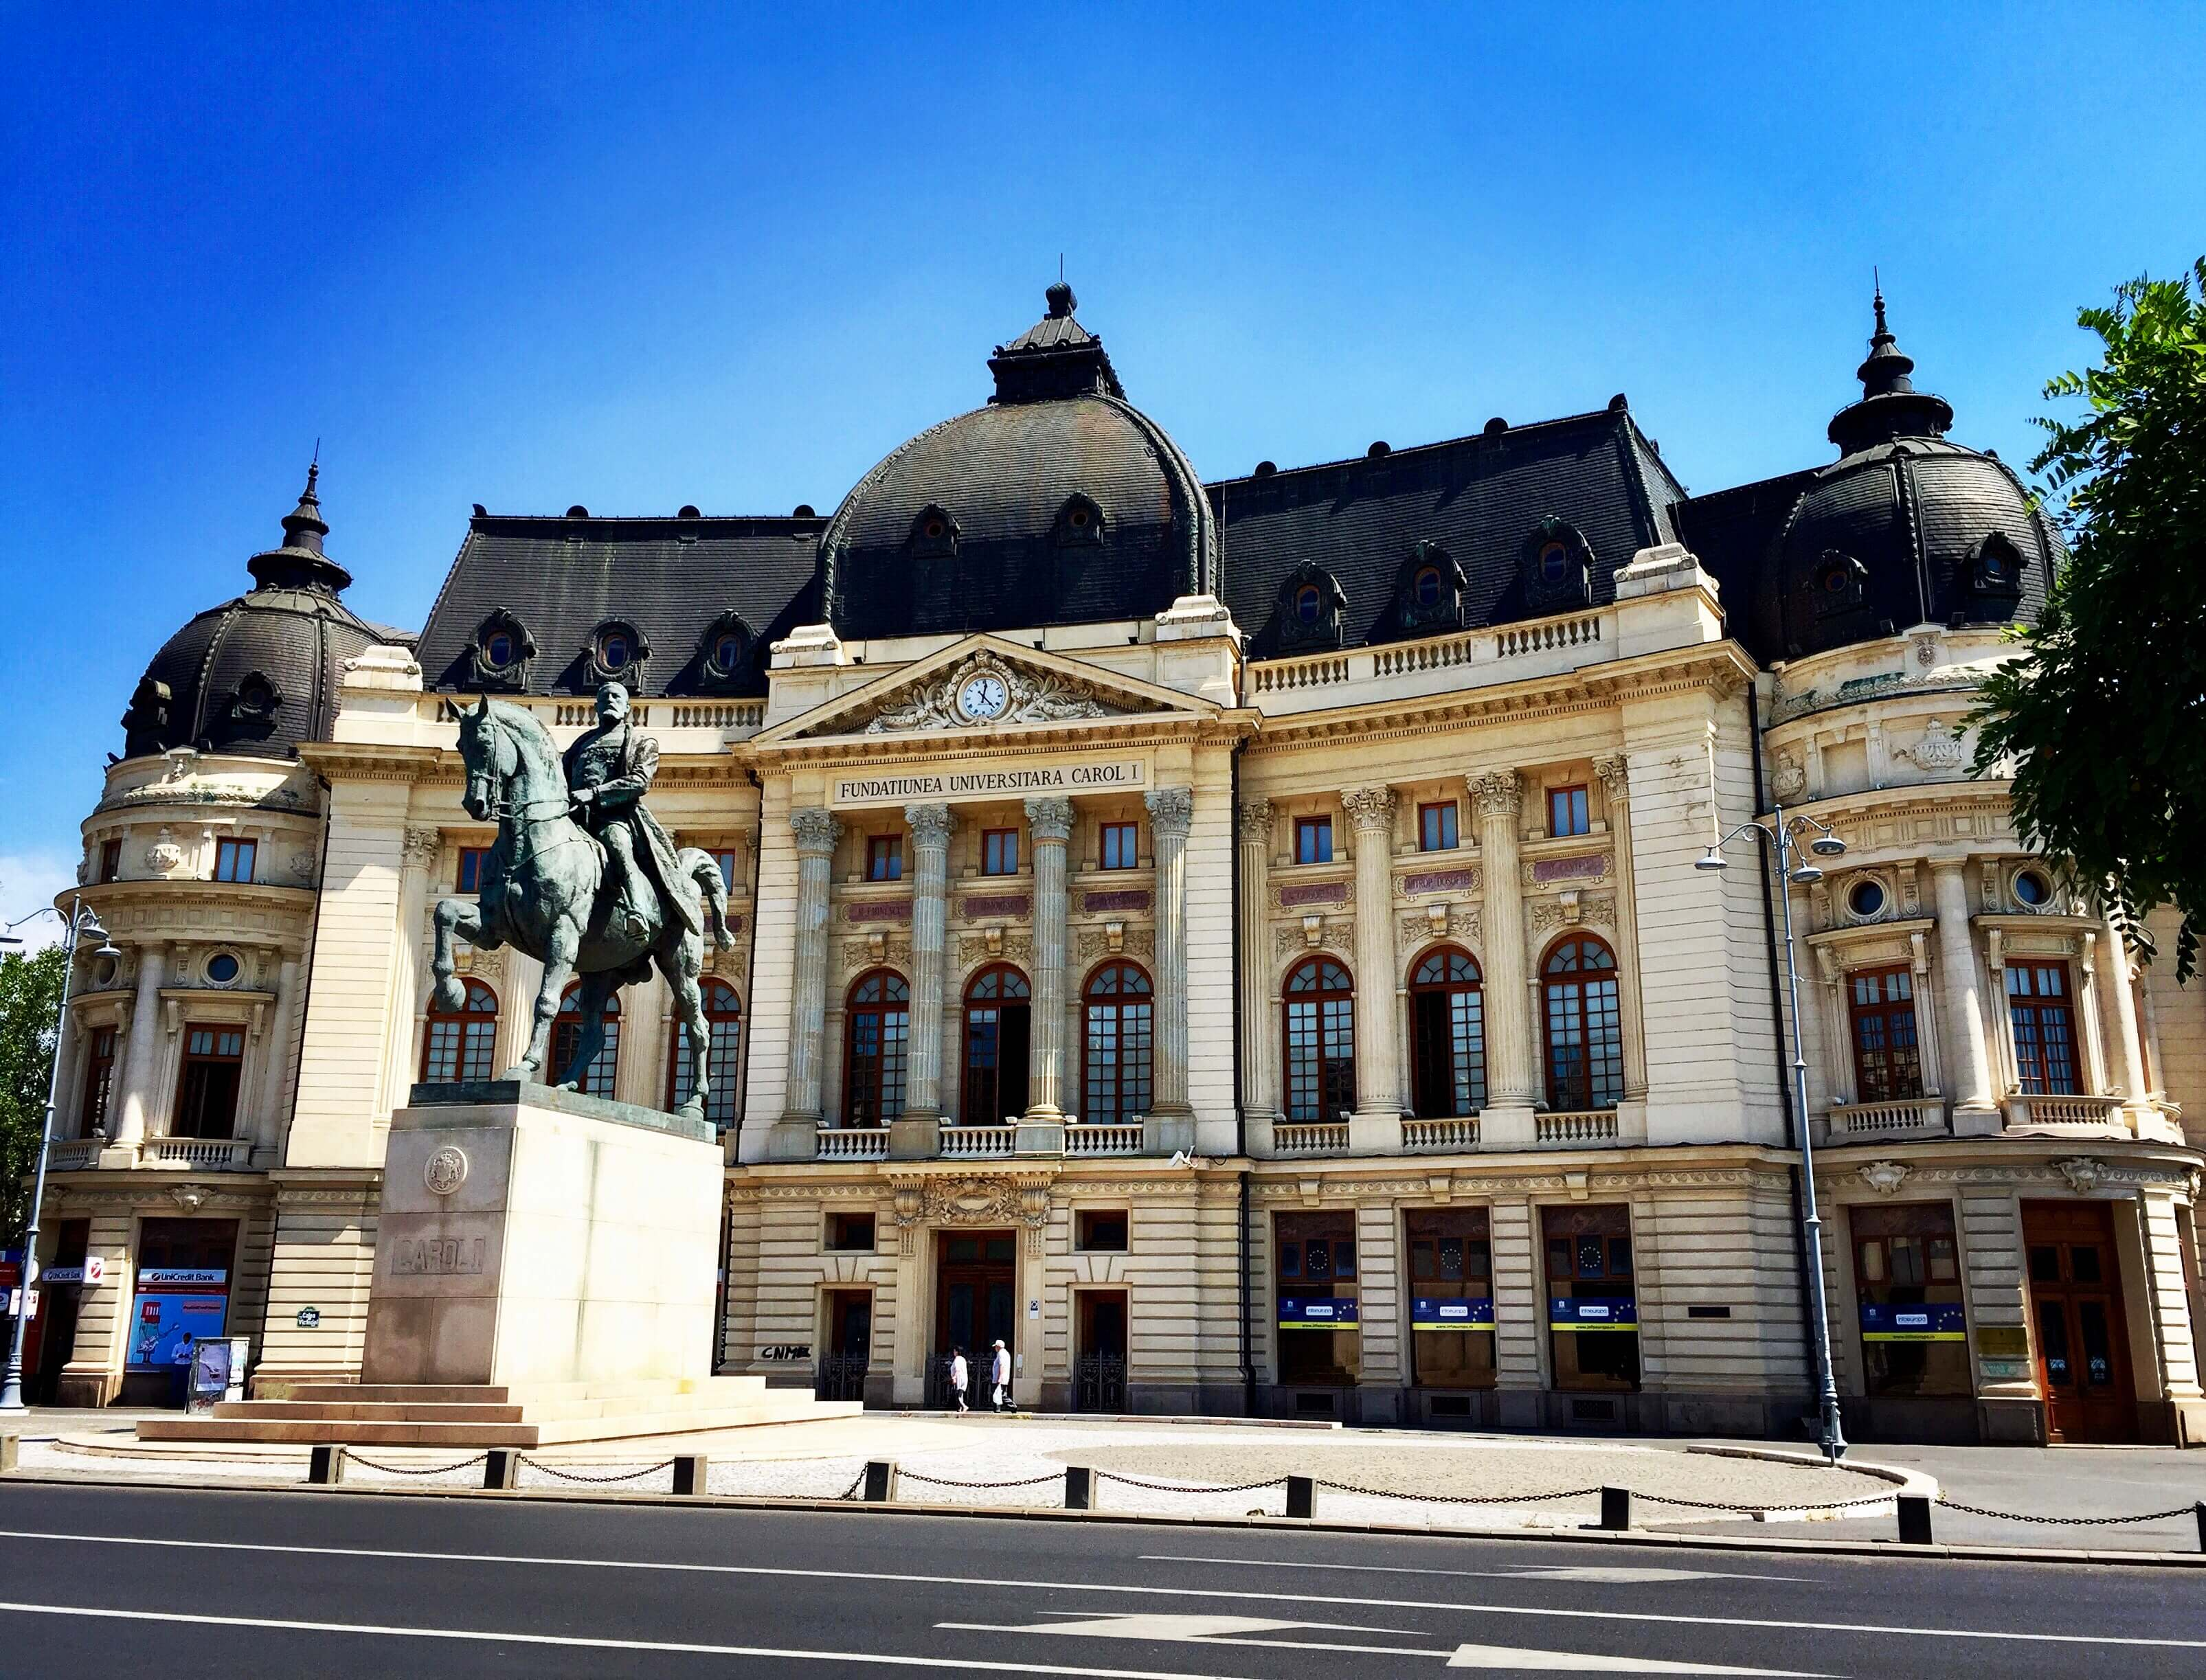 The National Museum of Art of Romania - formerly the royal palace in Revolution Square, Bucharest